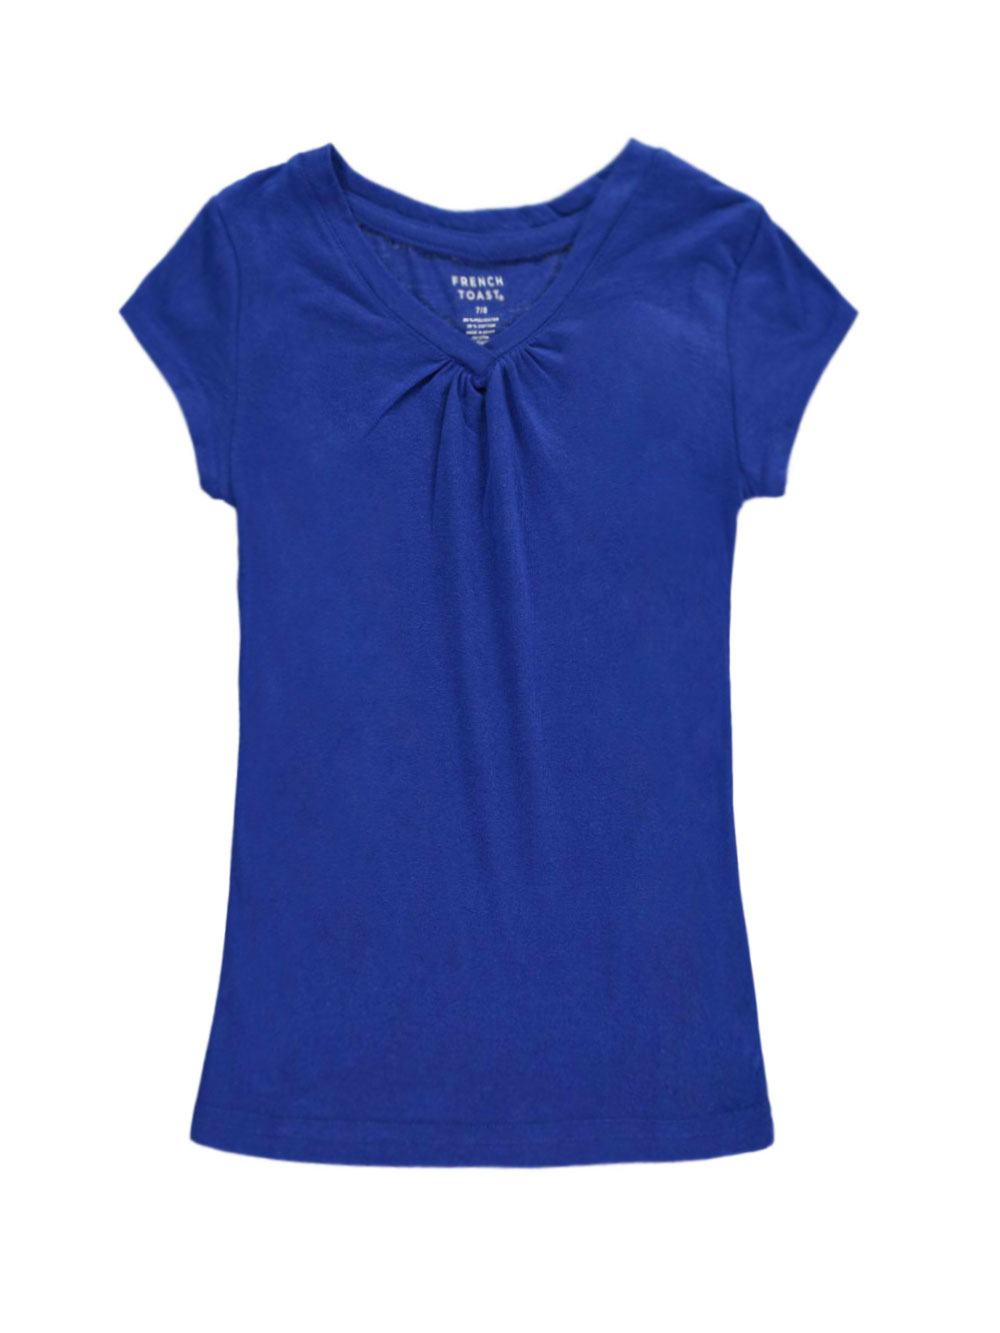 French toast big girls 39 ruched v neck t shirt sizes 7 for Large shirt neck size